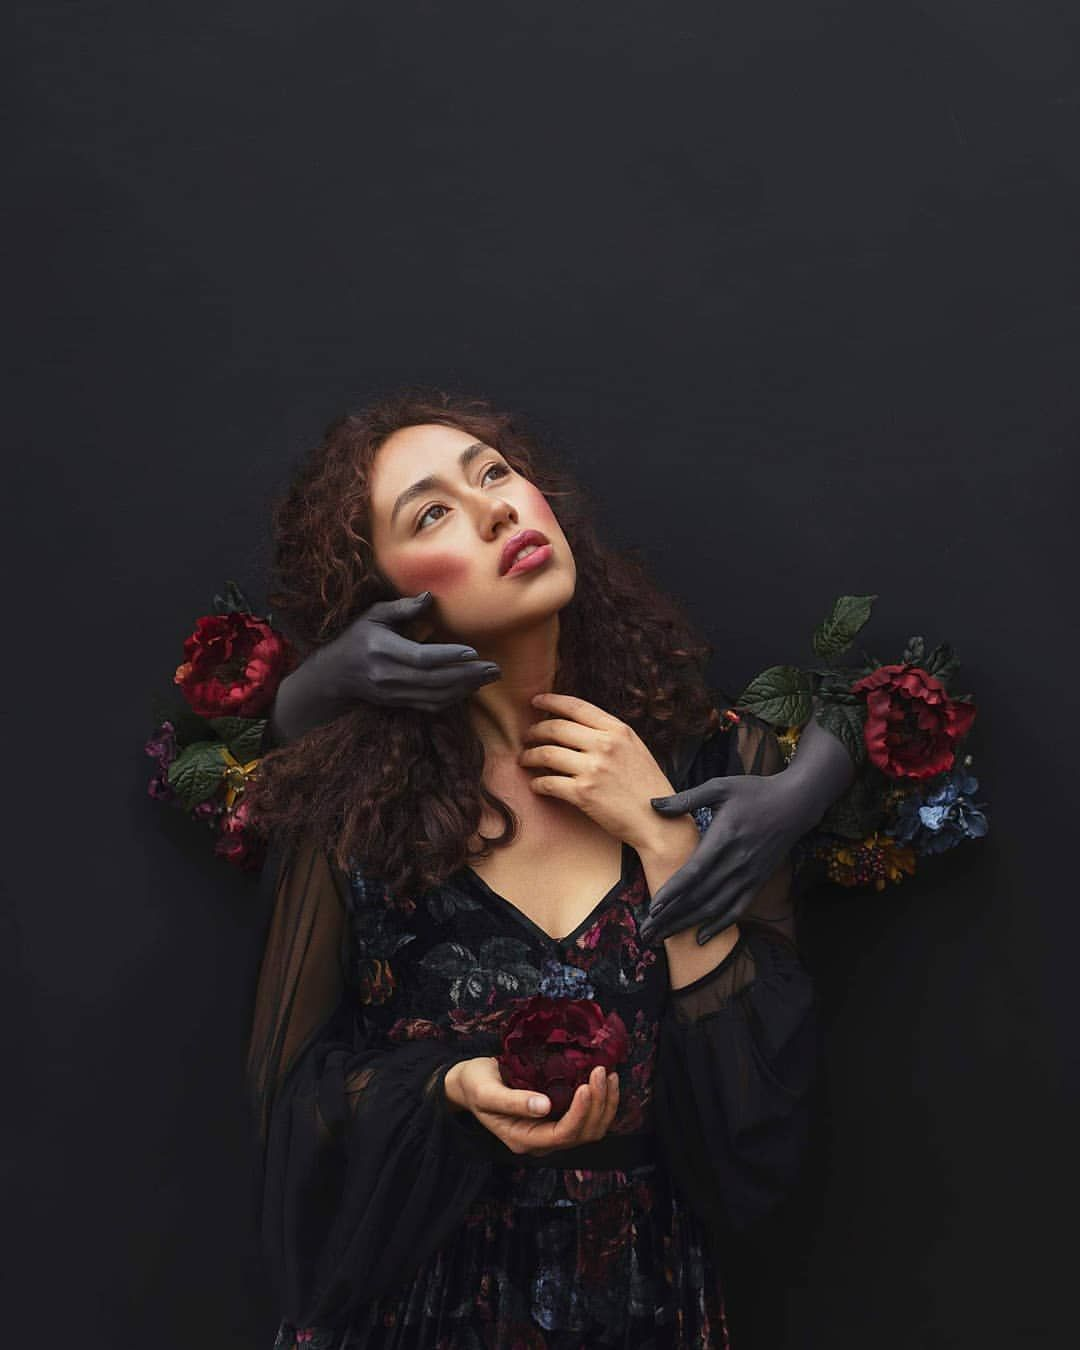 Gorgeous Fine Art Portrait Photography By Aleah Michele Ford With